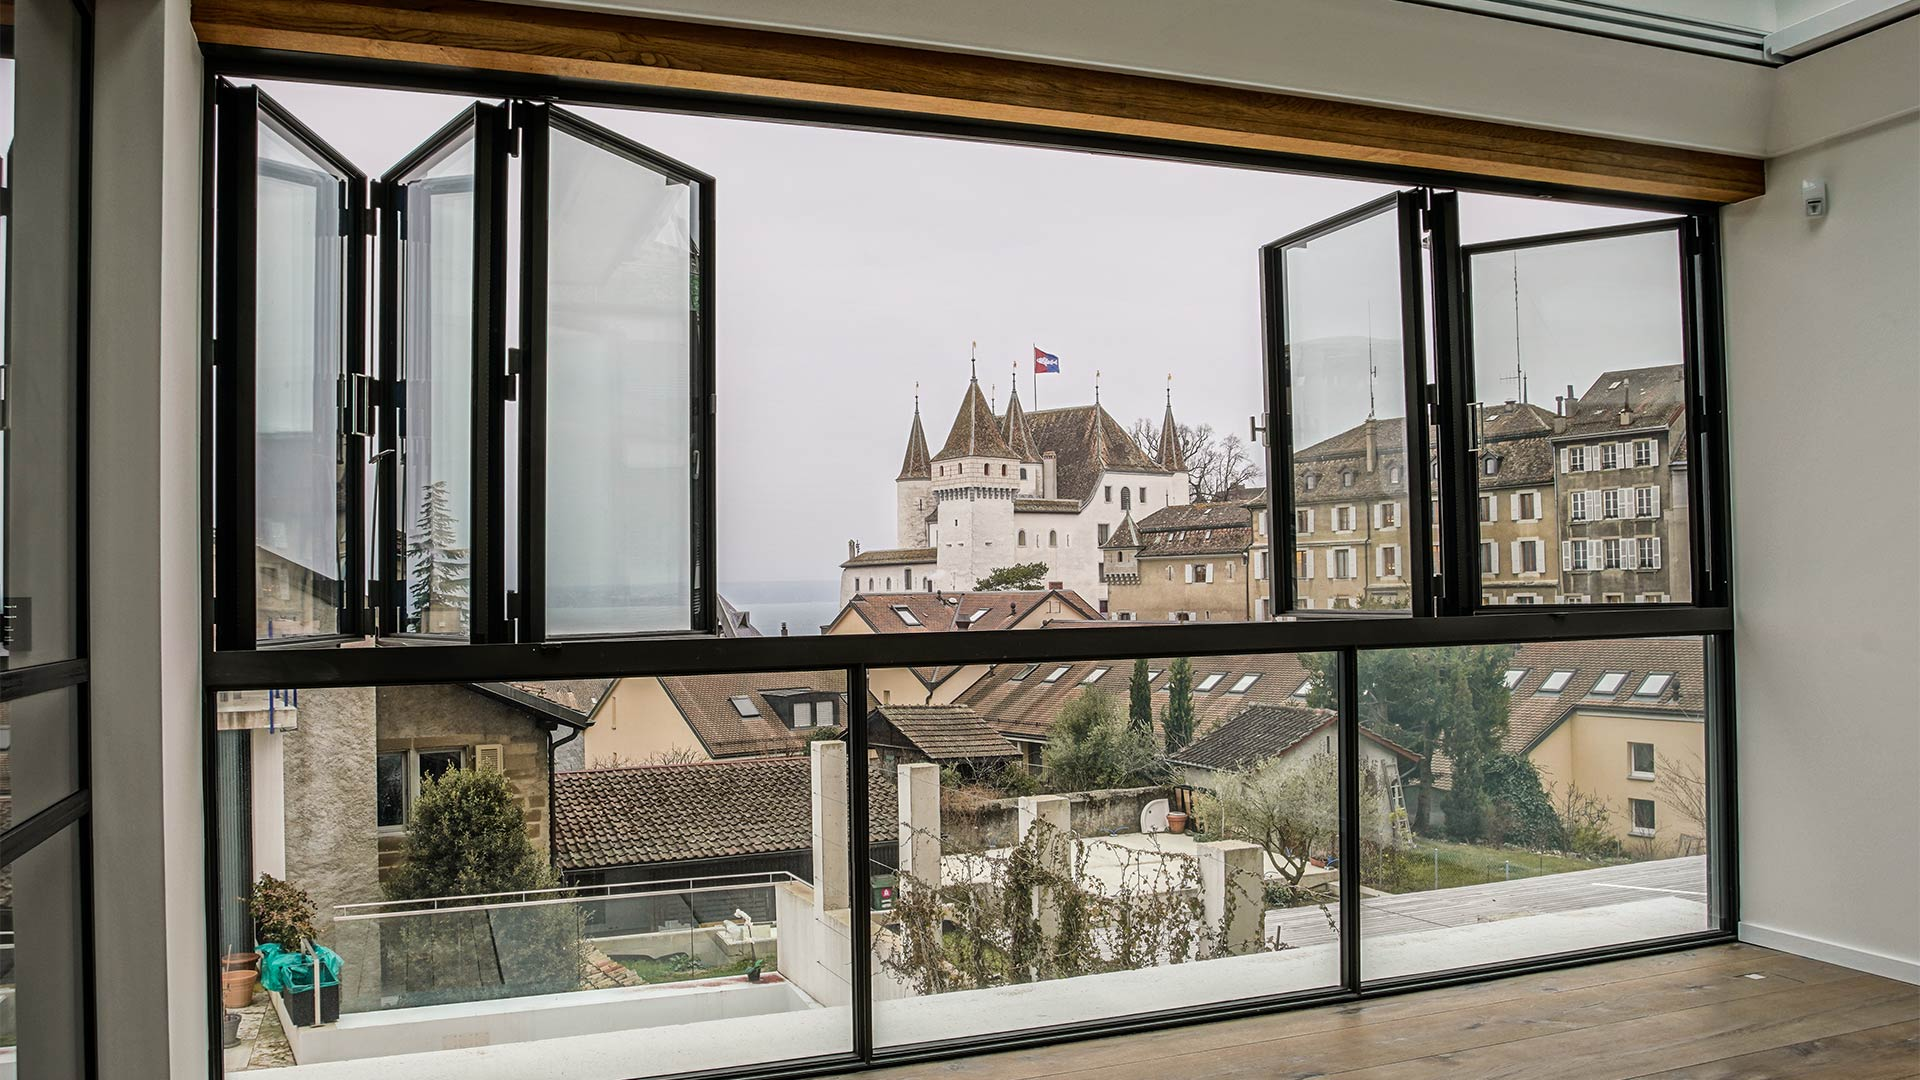 Looking outside at a castle Nyon, Geneva through open MHB folding door